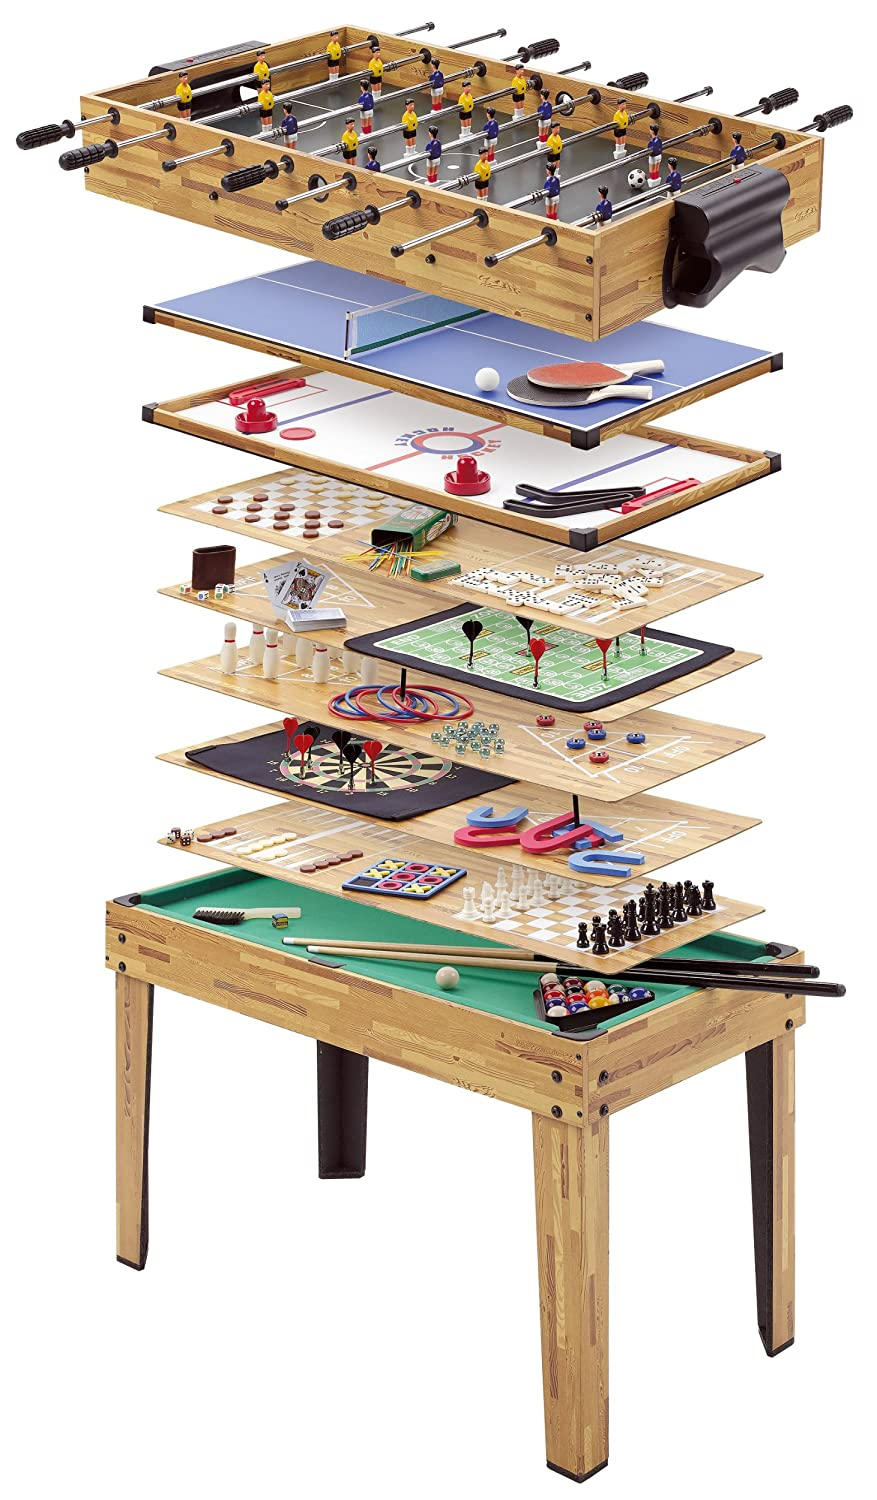 Mightymast Leisure 34 In 1 Multiplay Games Table Amazon Electronics